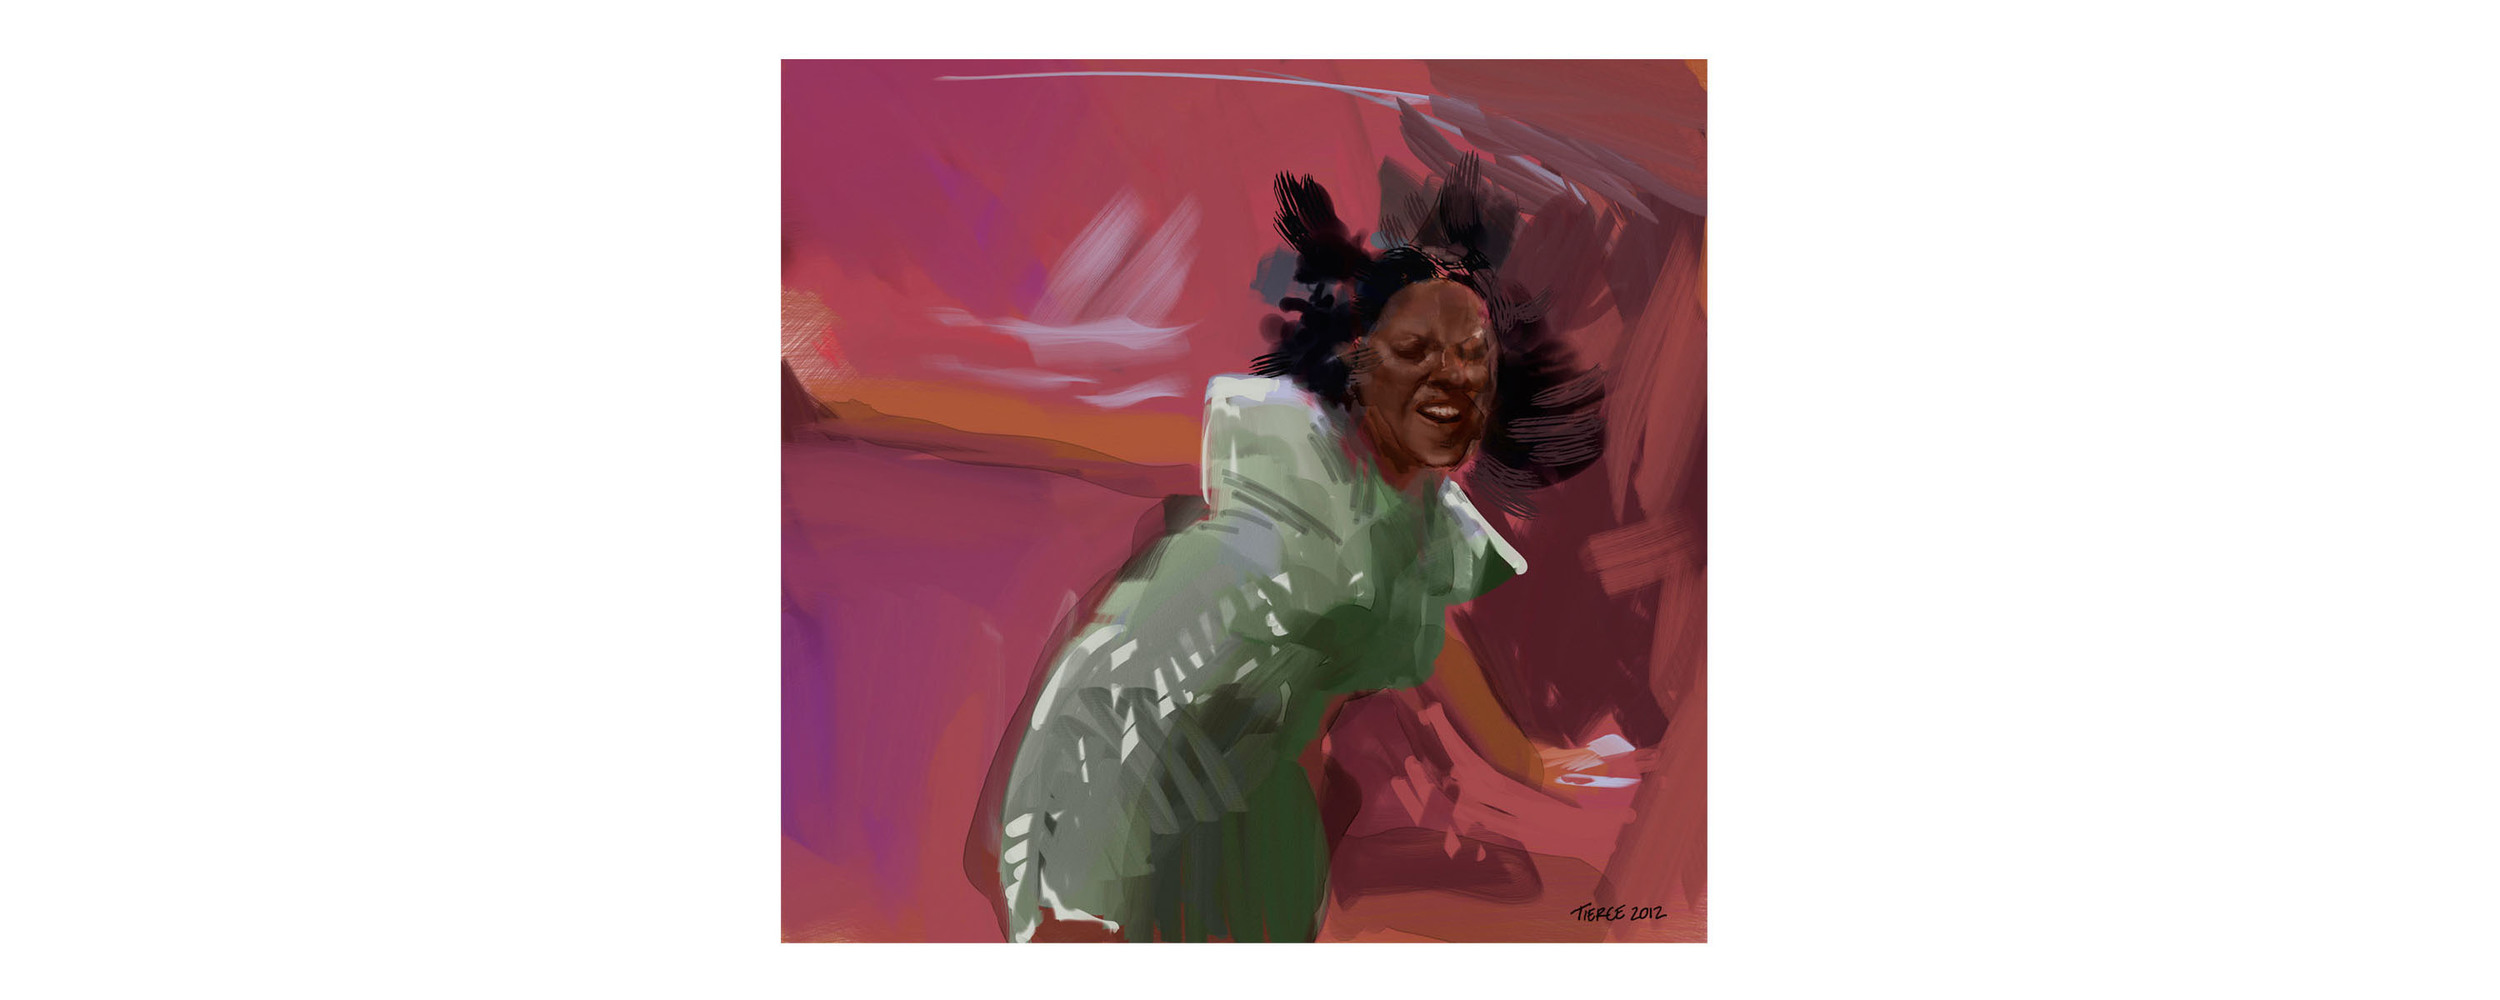 sharon_jones_2_w_signature_wide format2.jpg